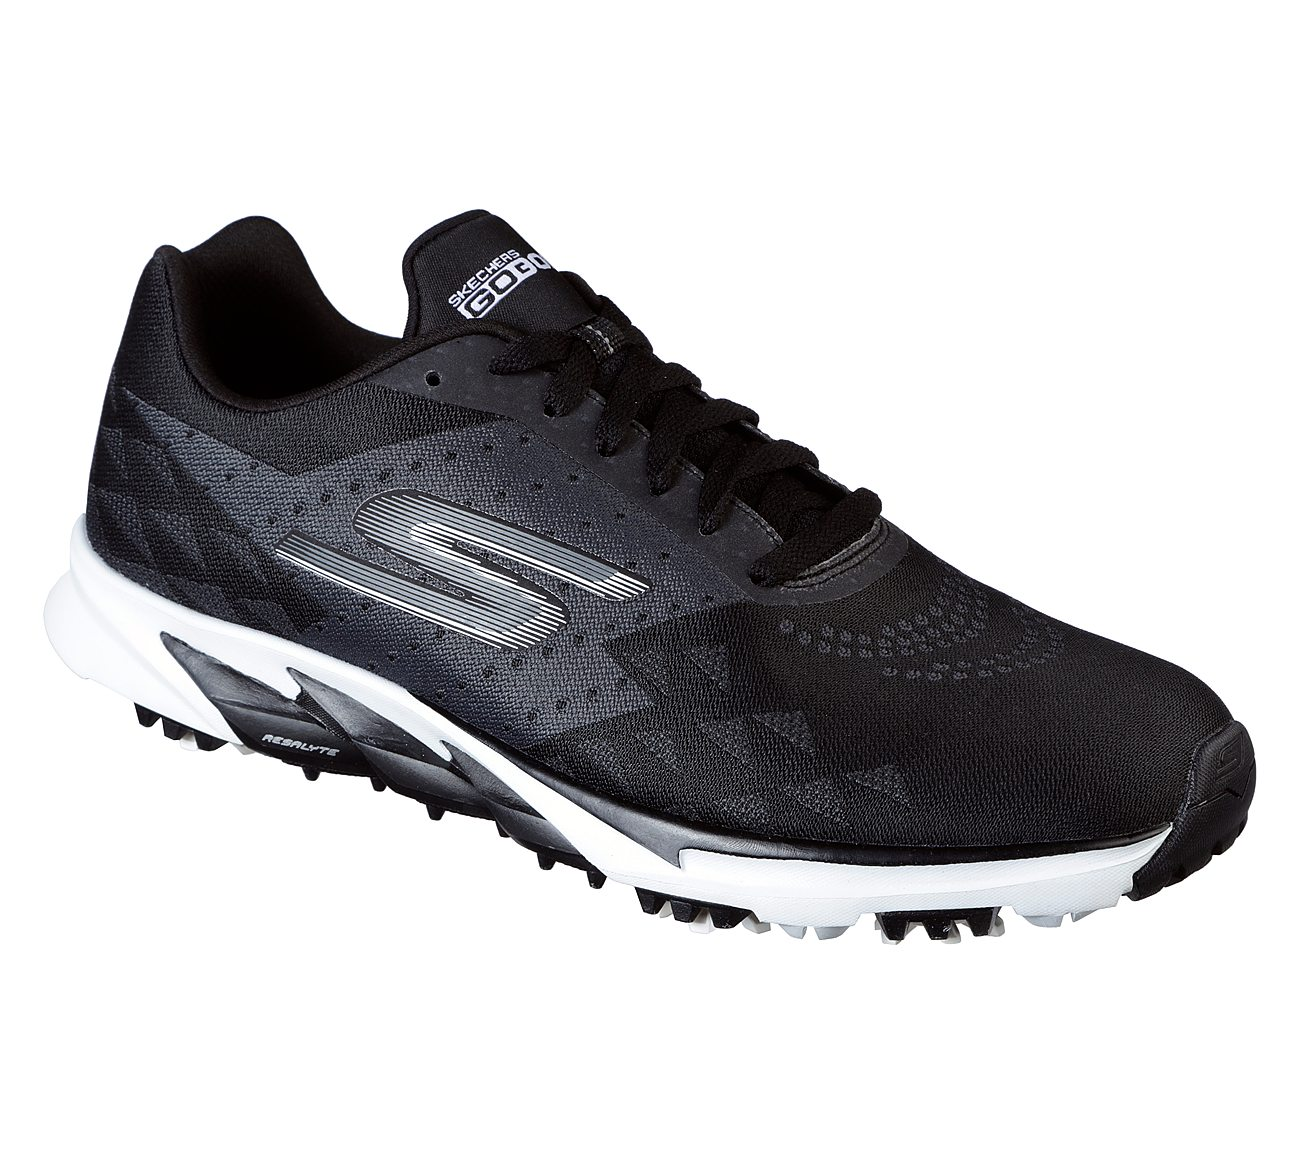 Skechers Blade 2 Golf Shoe - Black/White